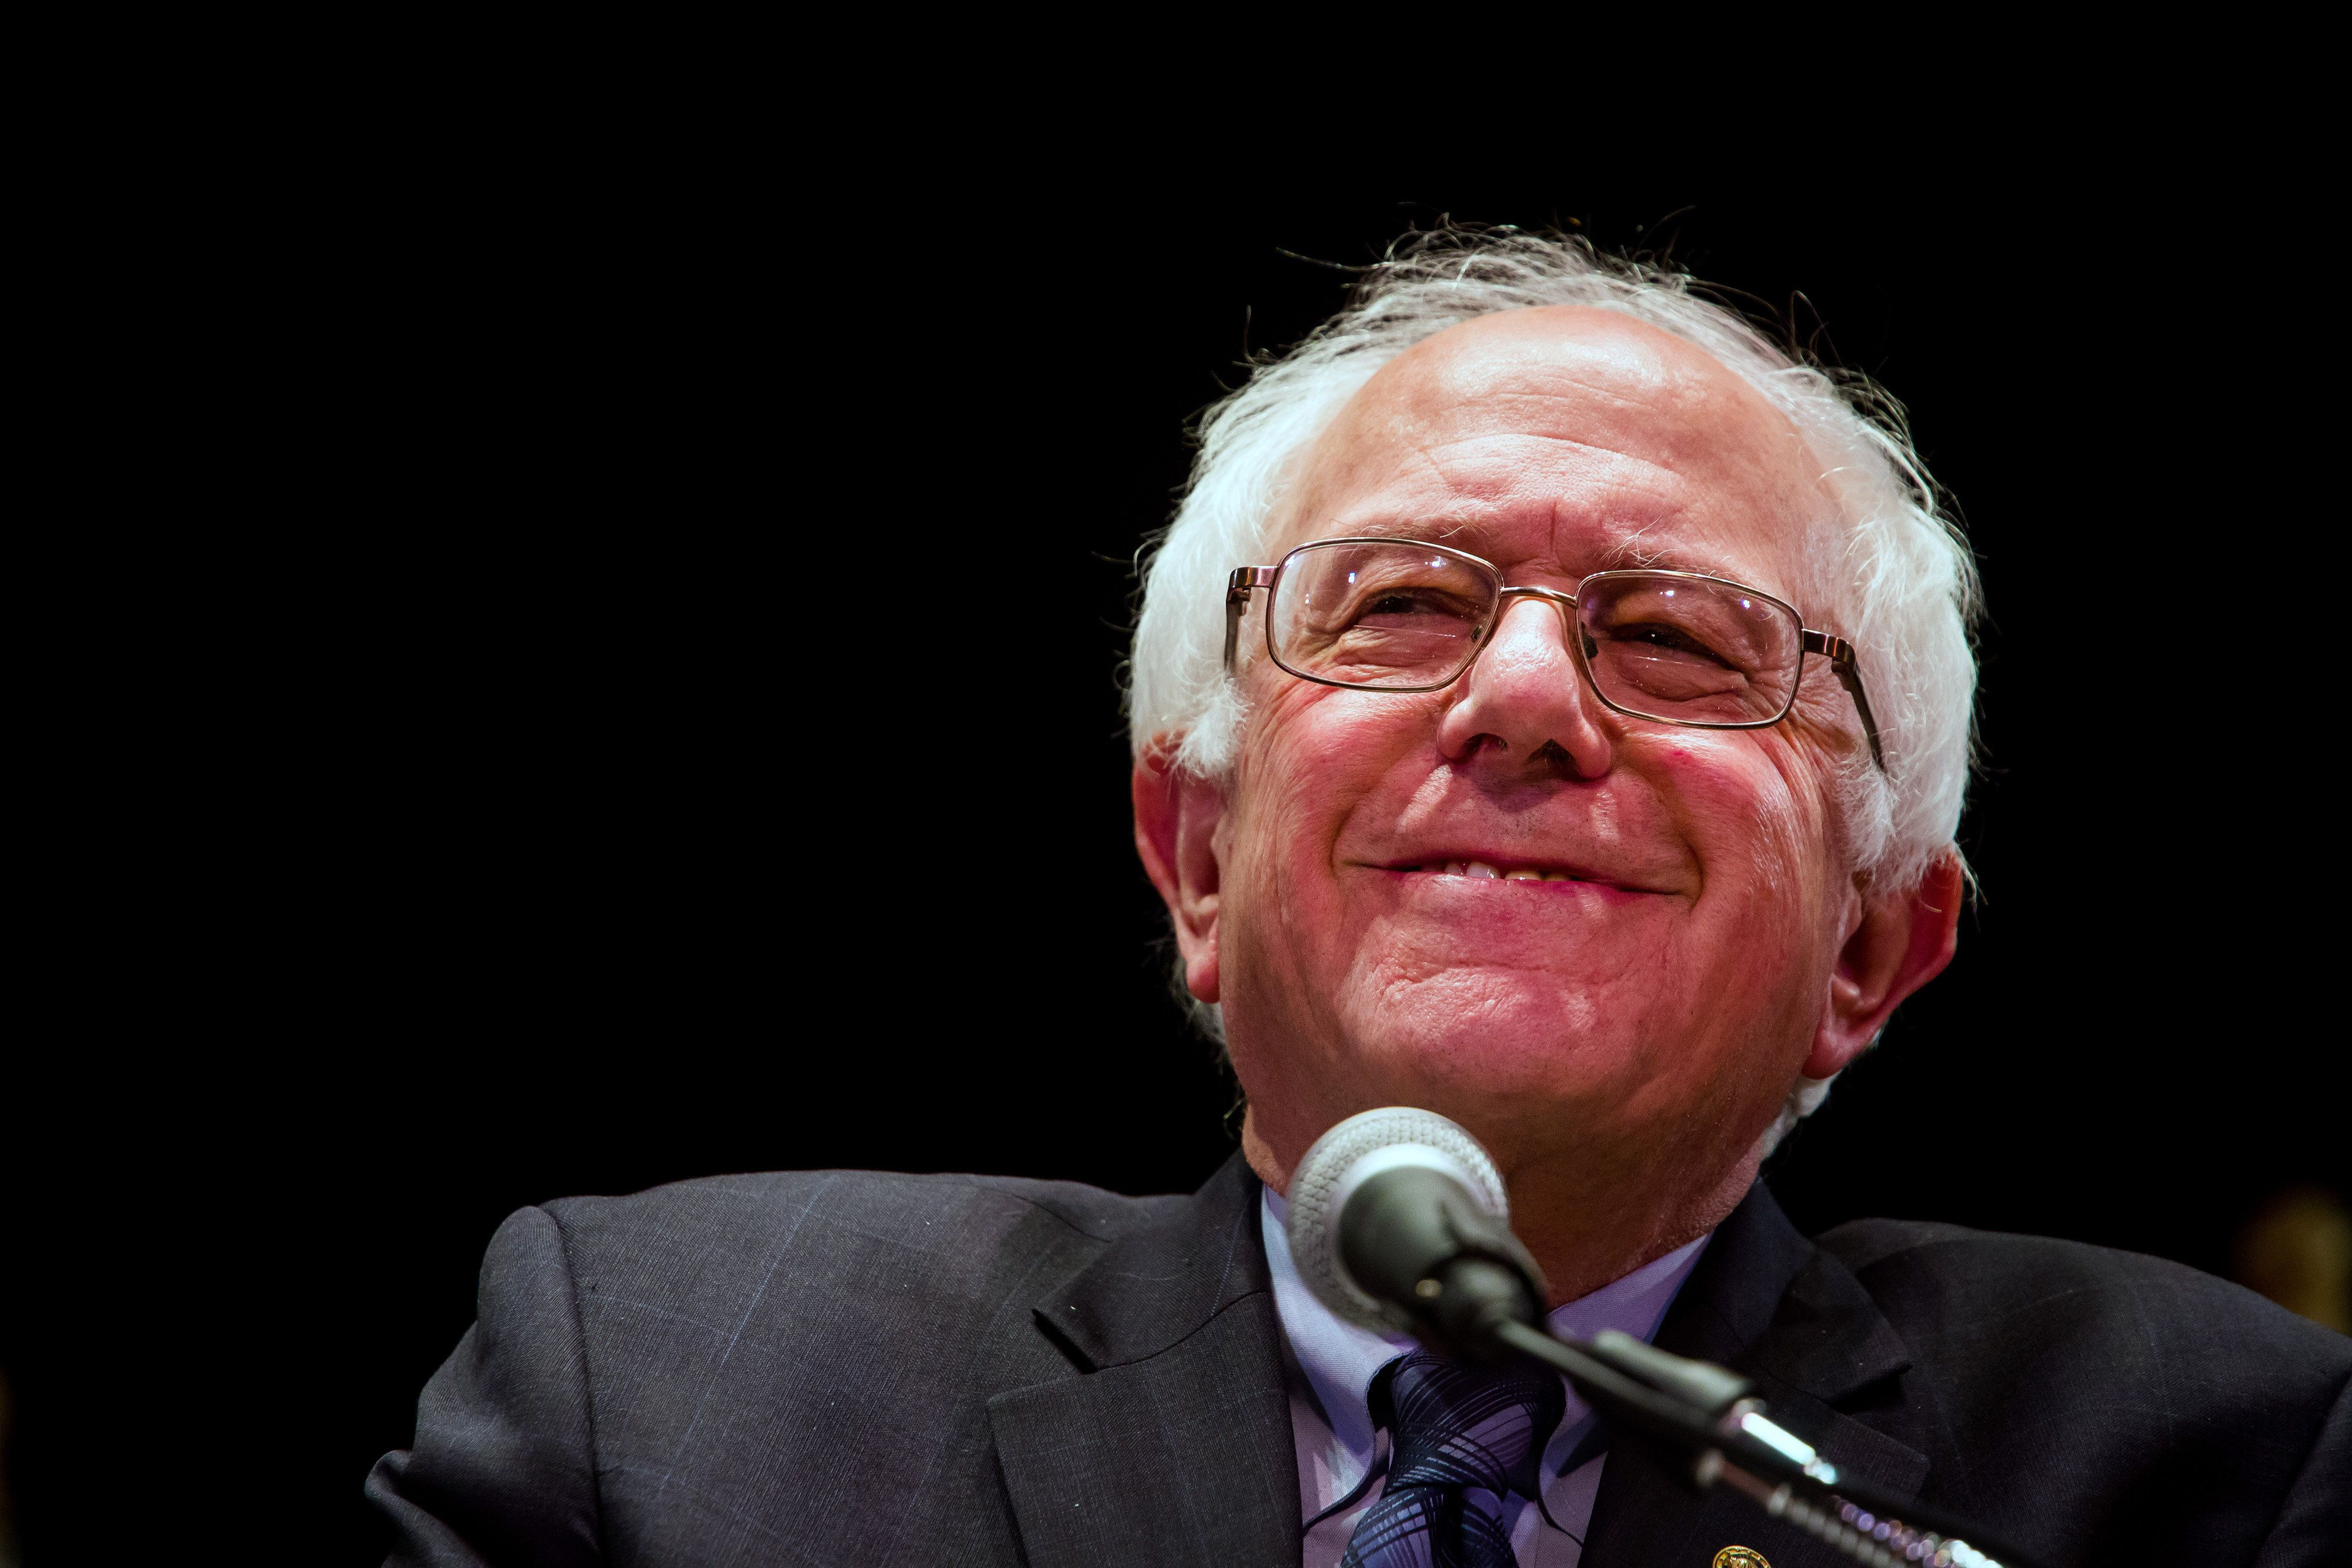 Senator Bernie Sanders, an independent from Vermont and 2016 Democratic presidential candidate, smiles during a speech in New York, U.S., on Tuesday, Jan. 5, 2016. Sanders lambasted the power the biggest lenders have and the Wall Street and corporate greed he said is destroying the nations fabric. Photographer: Michael Nagle/Bloomberg via Getty Images